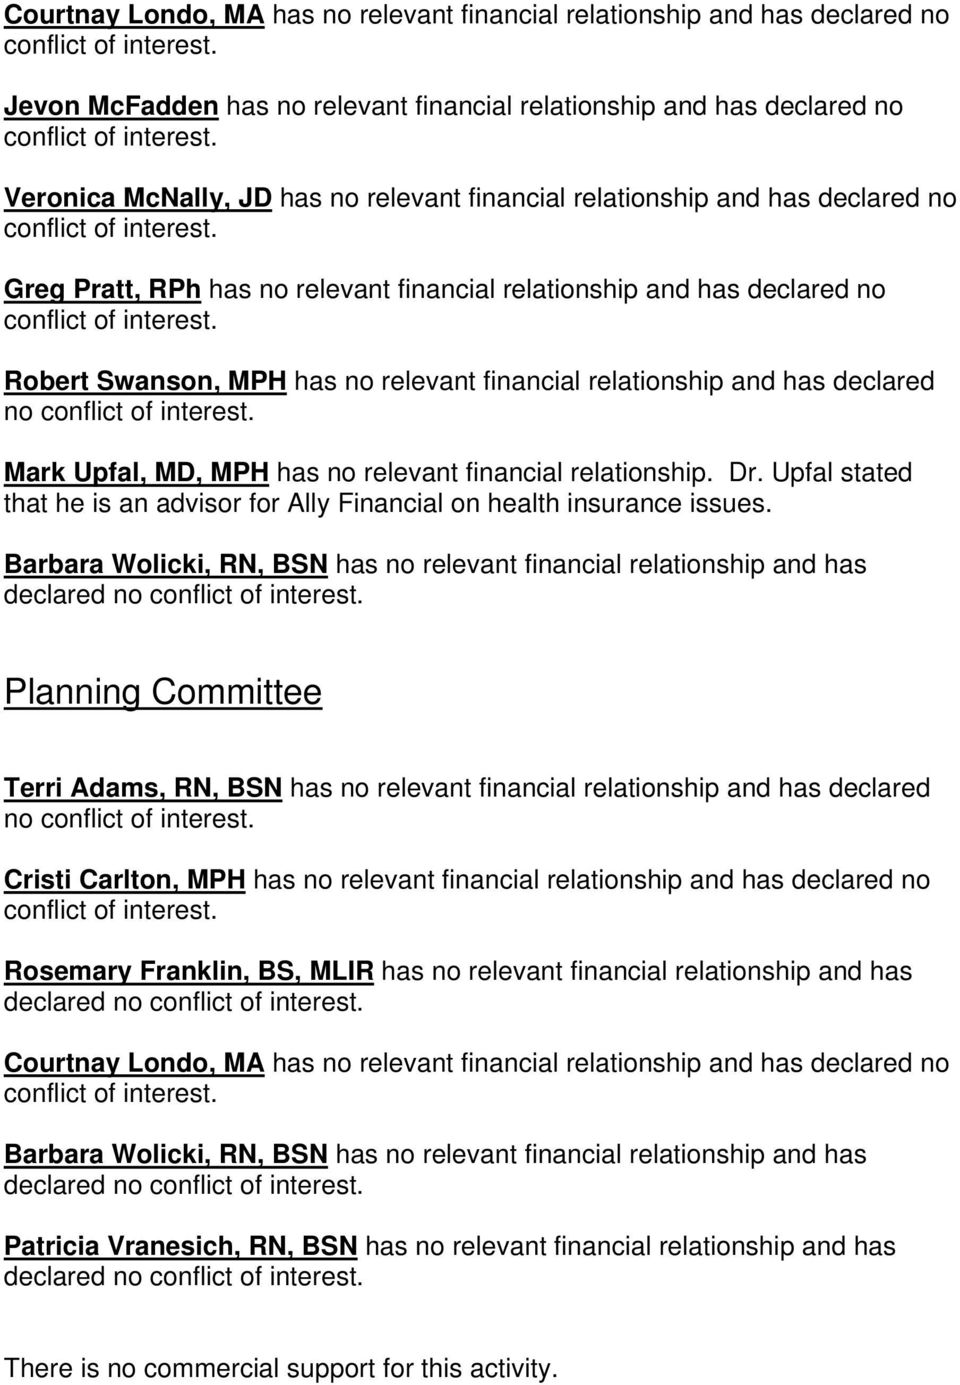 MD, MPH has no relevant financial relationship. Dr. Upfal stated that he is an advisor for Ally Financial on health insurance issues.